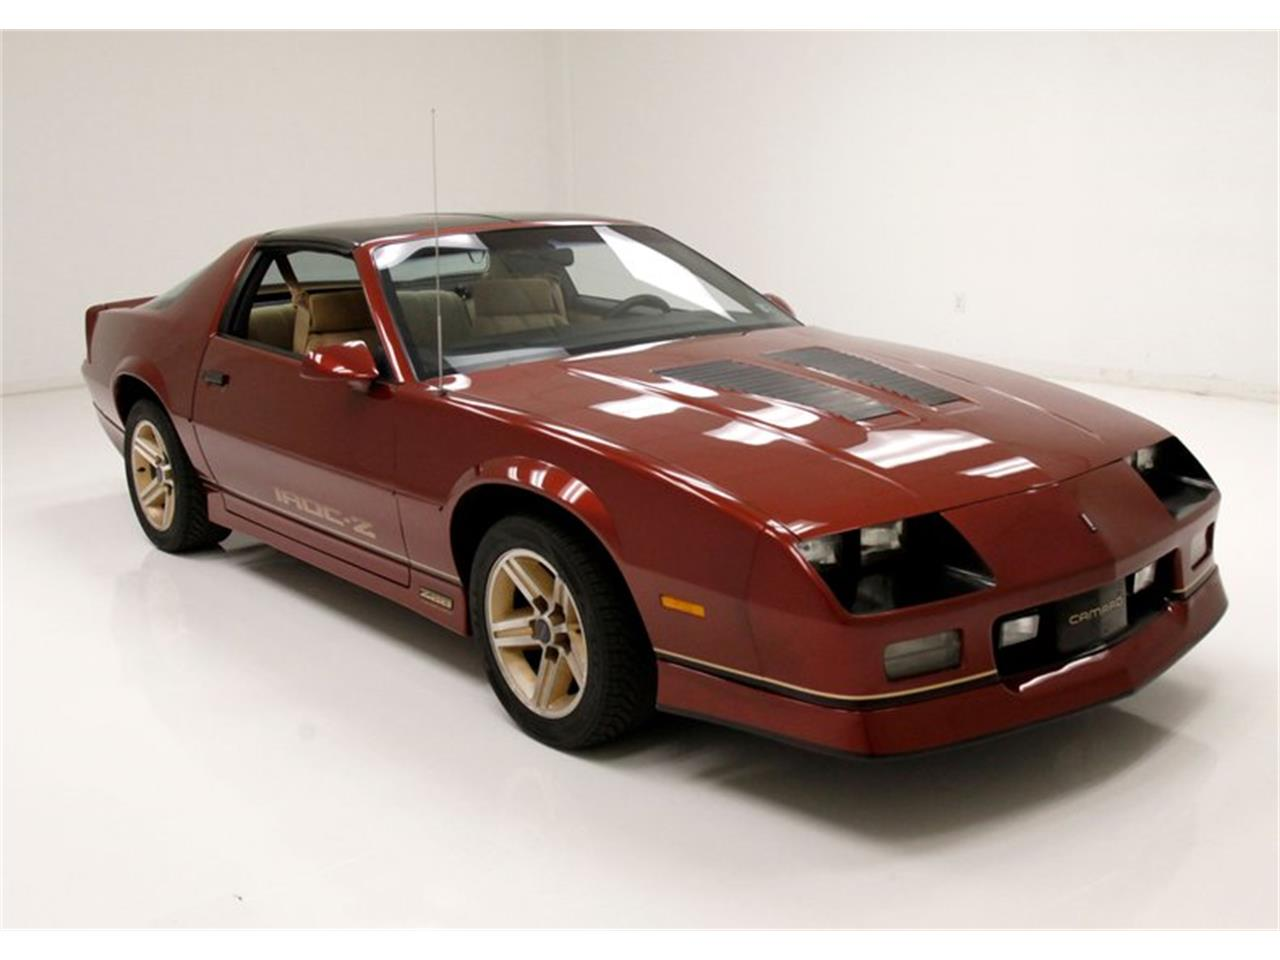 1986 Chevrolet Camaro IROC-Z (CC-1379444) for sale in Morgantown, Pennsylvania